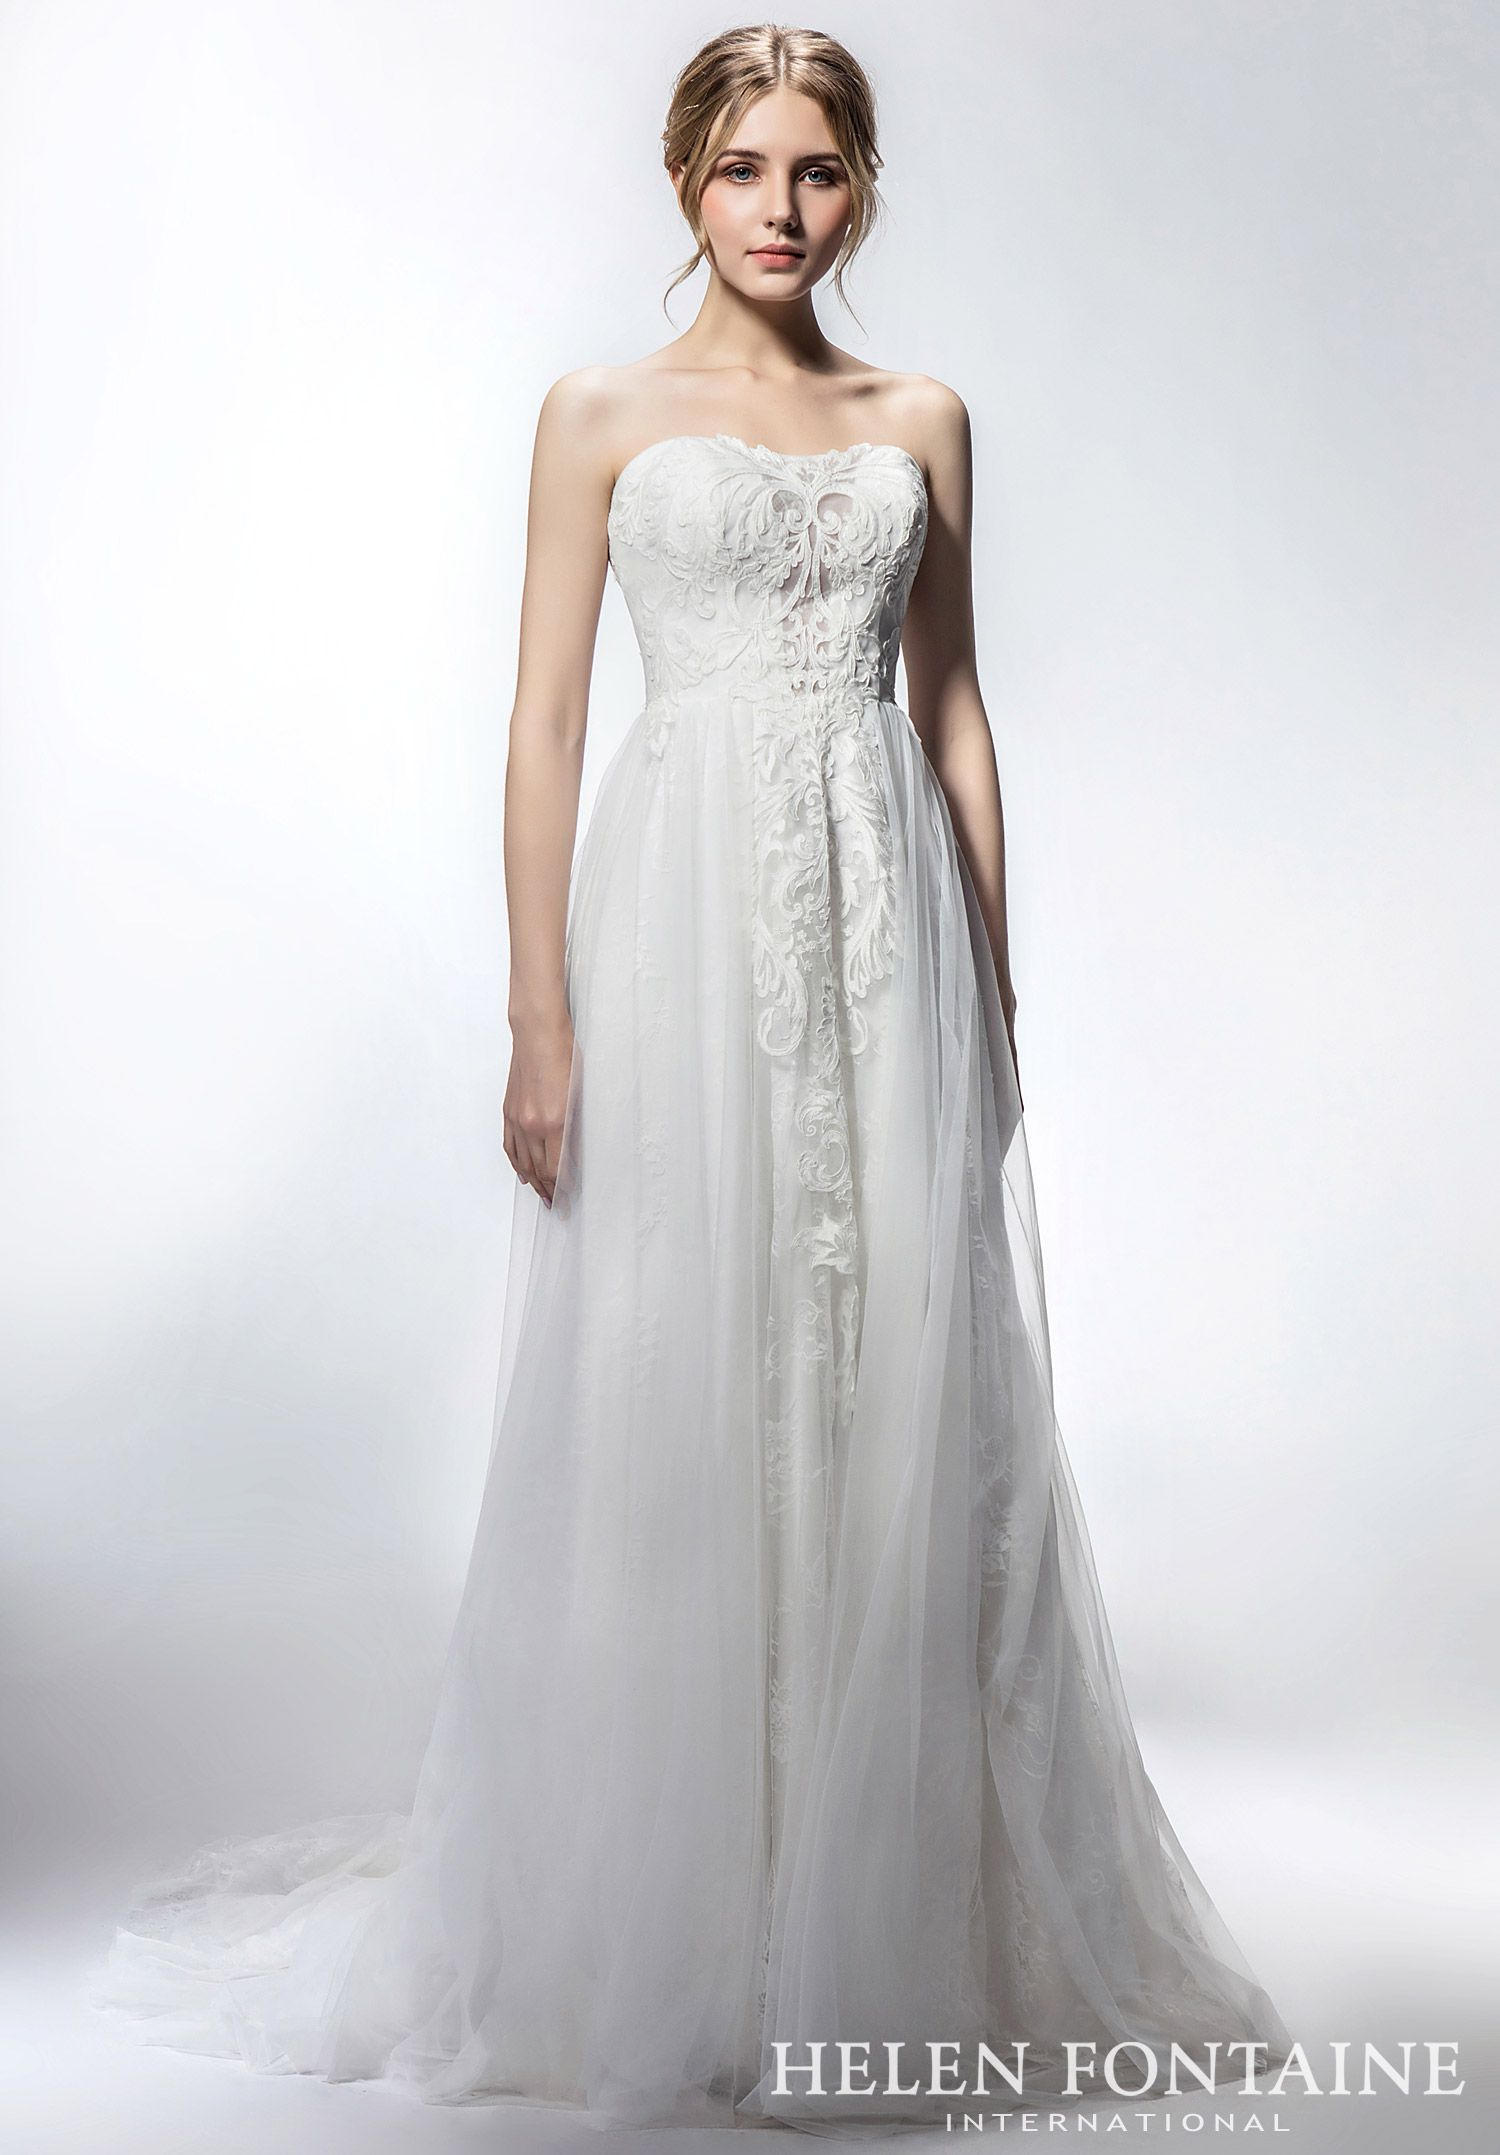 Slimming A Line Tulle Wedding Dress With Vintage Lace Style Hfw2736